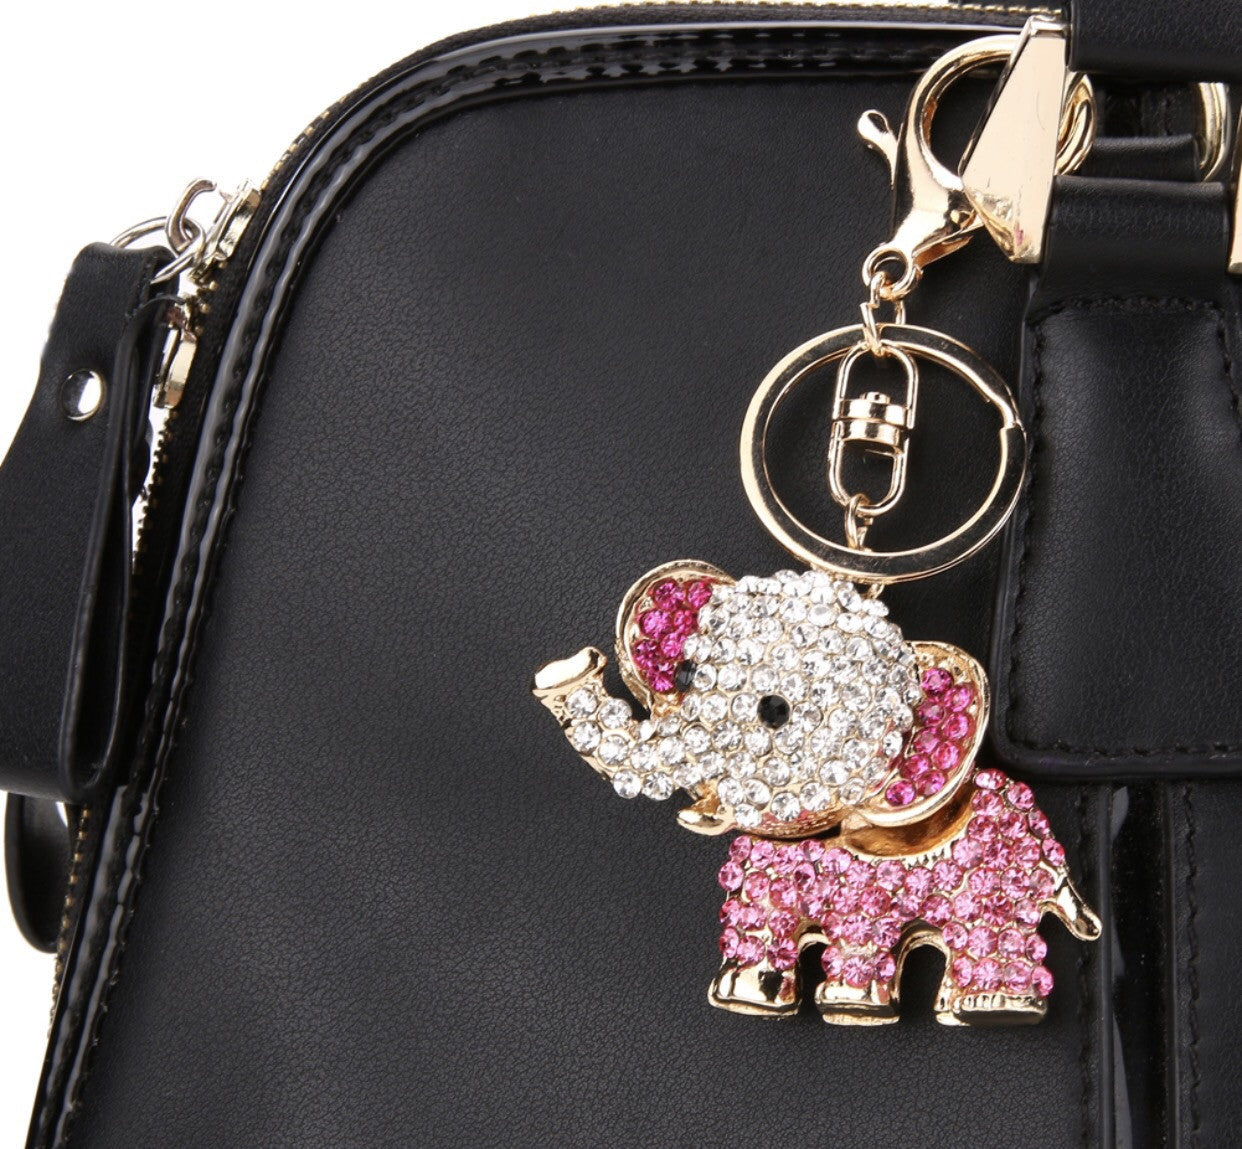 Elephant bag charm keychain in pink